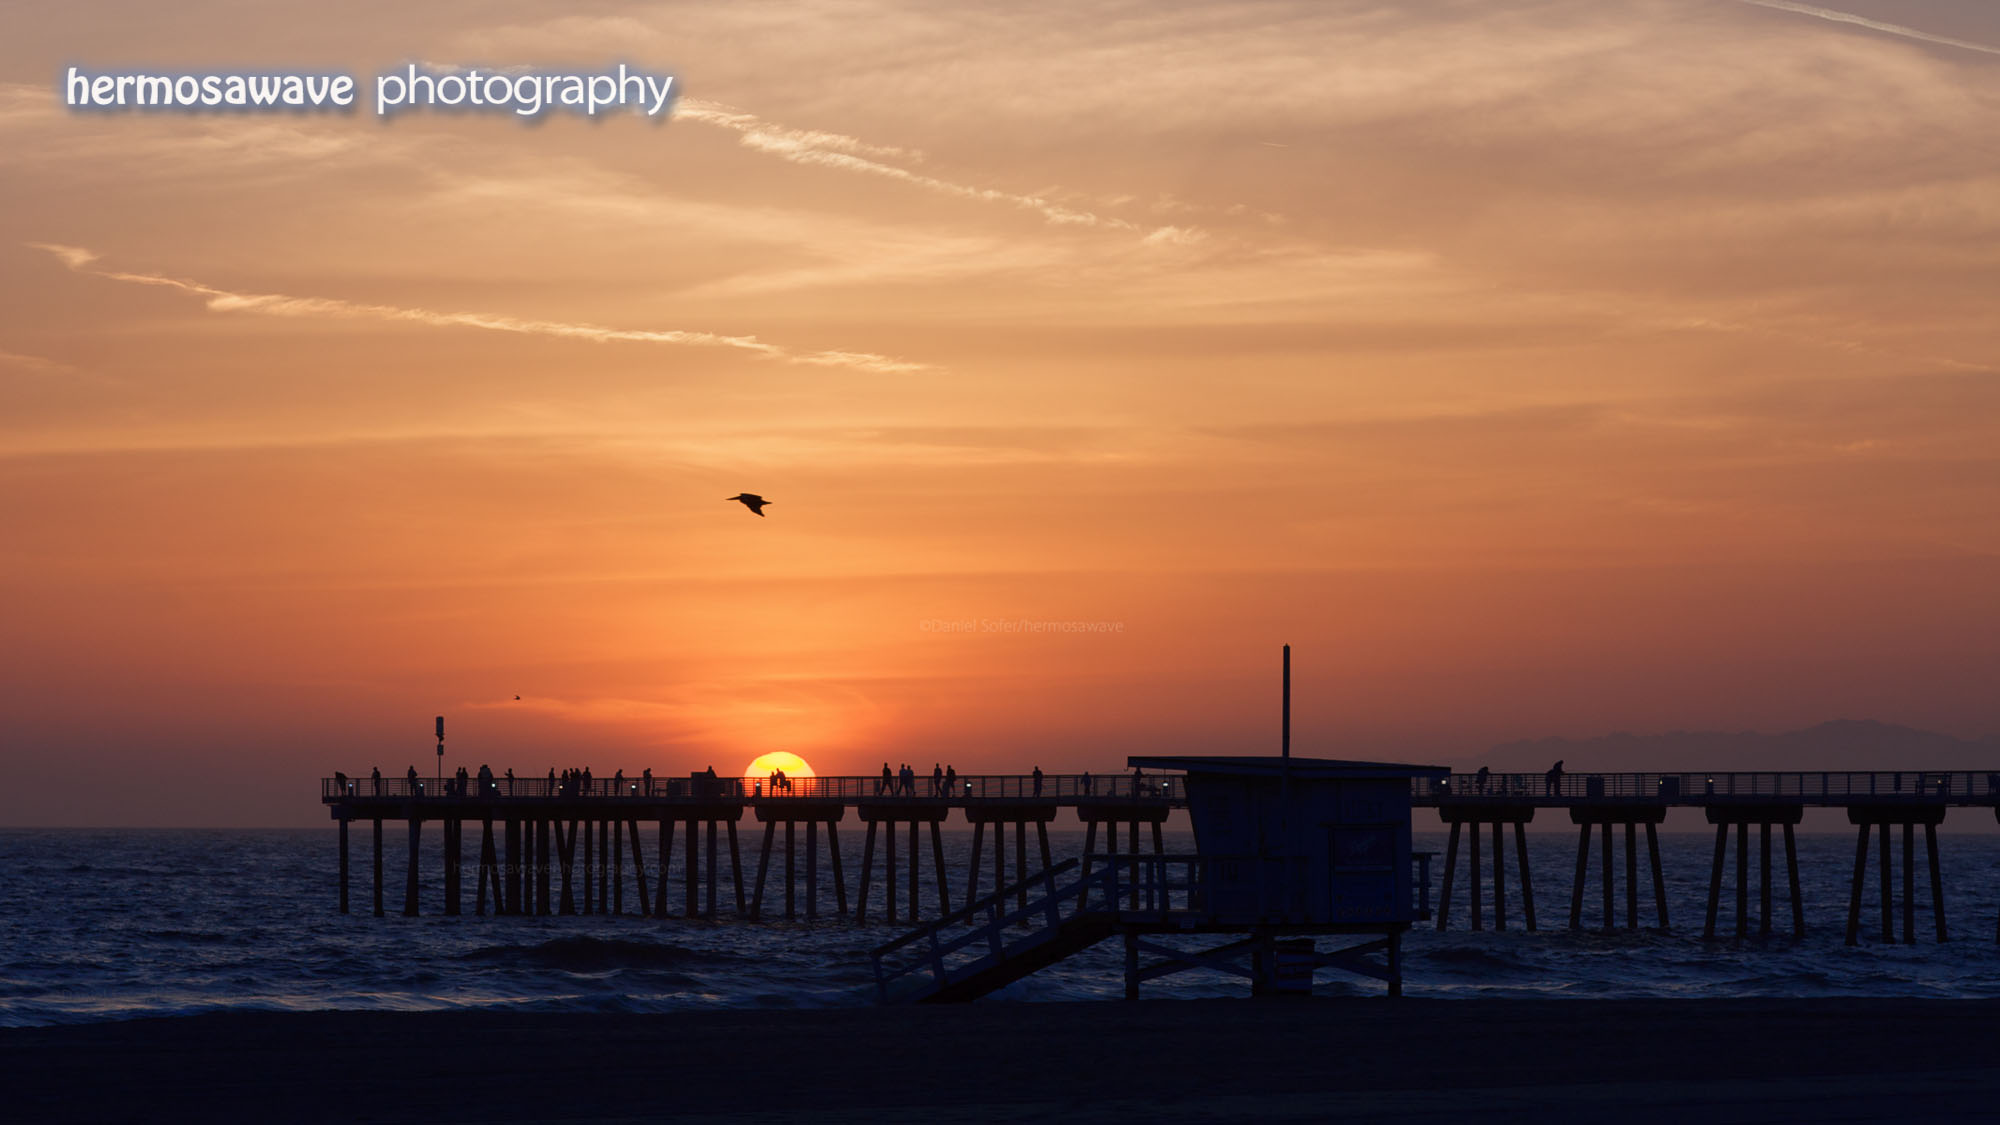 Sunset over the Hermosa Pier